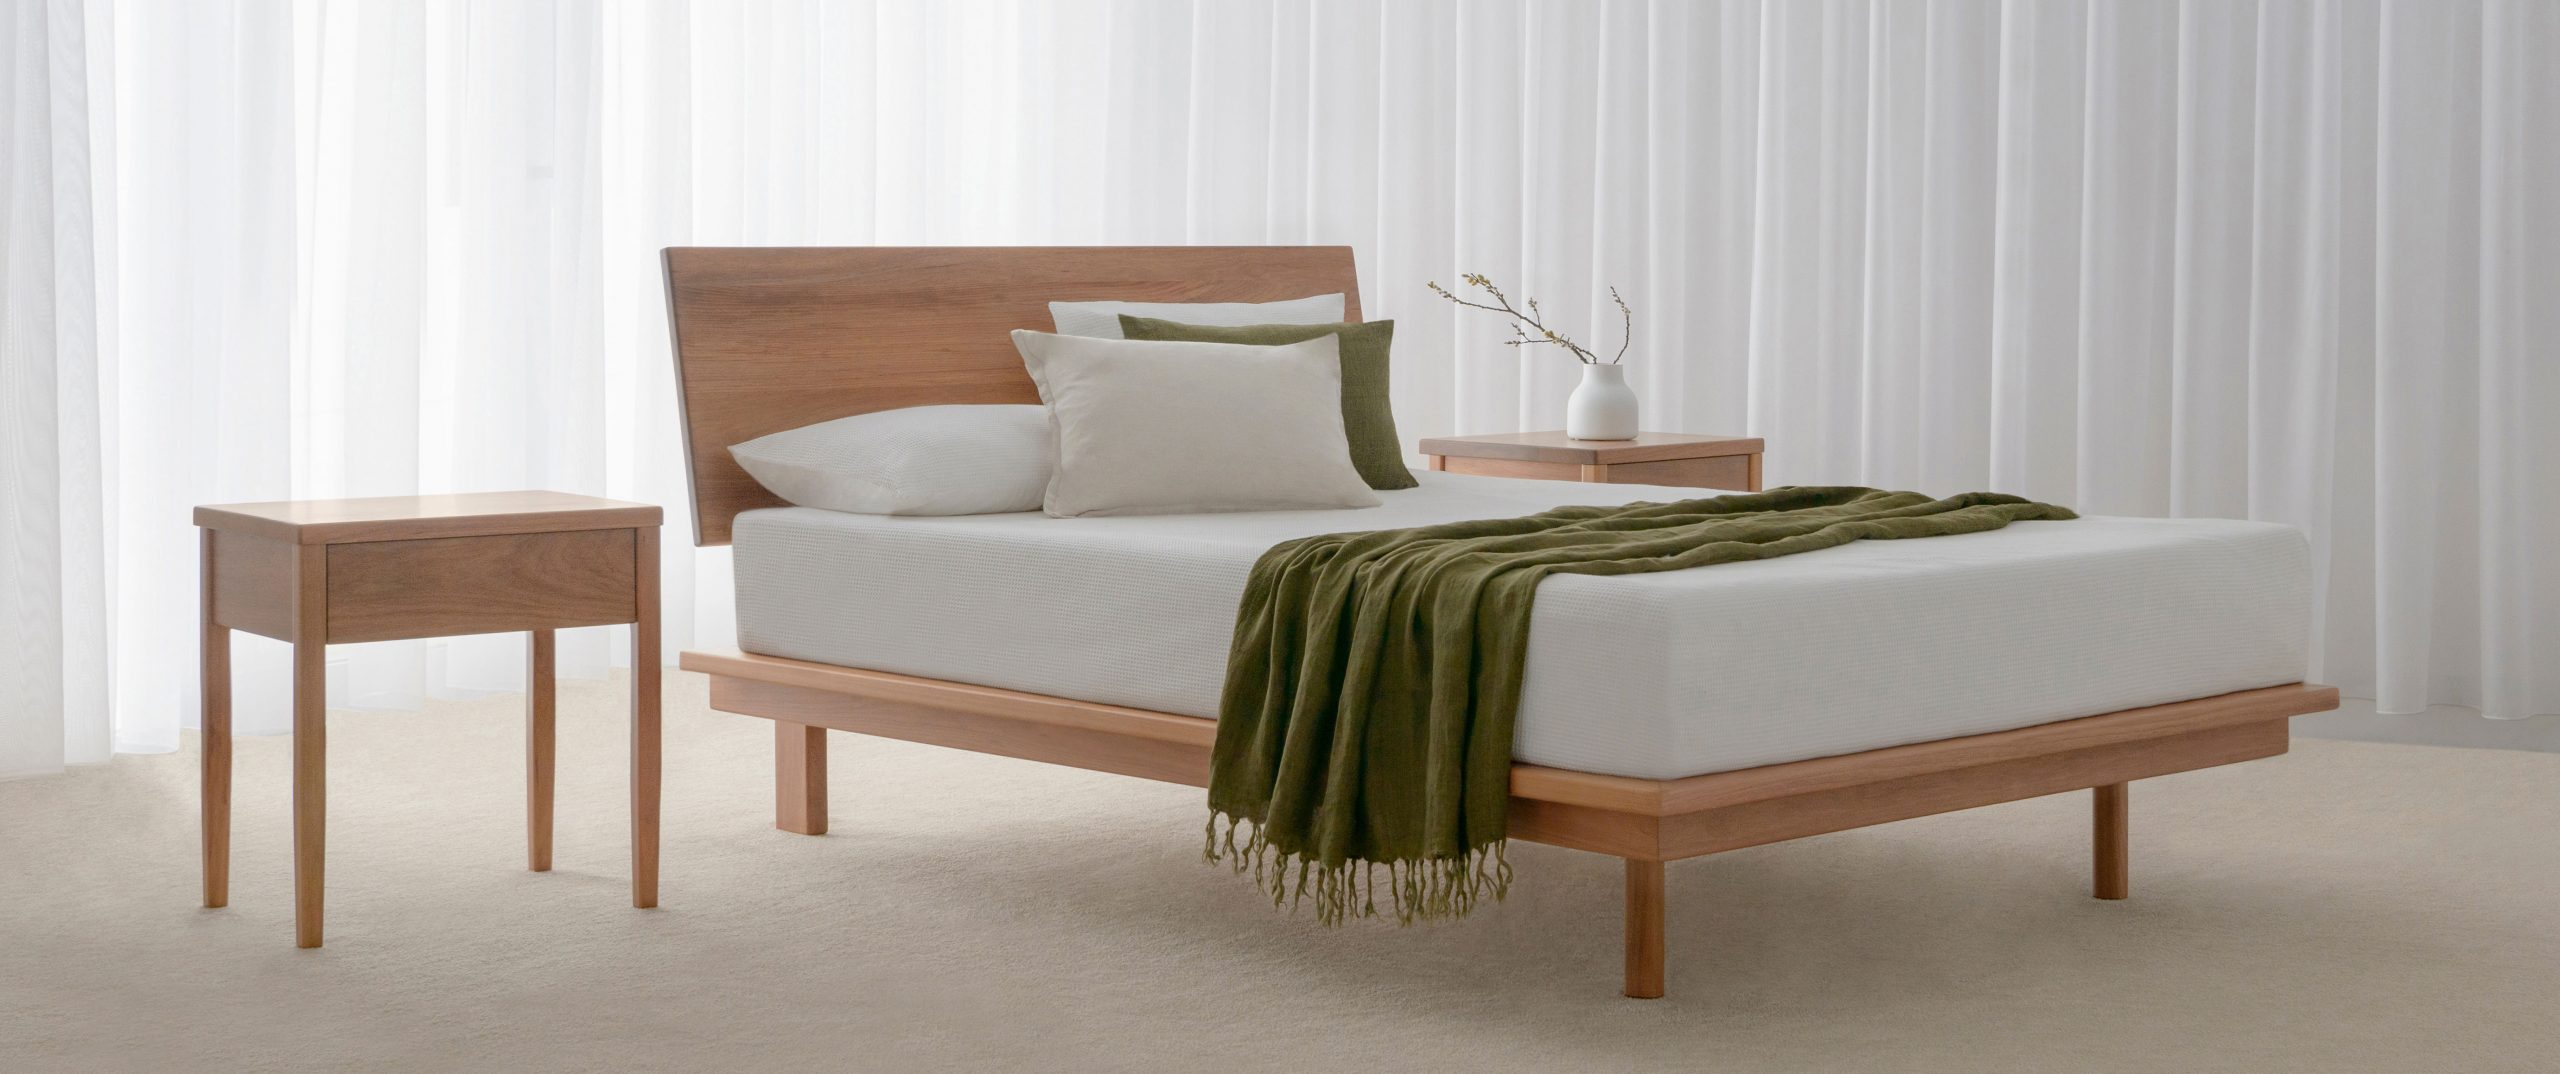 timber bed frame made in Adelaide with matching bedside tables